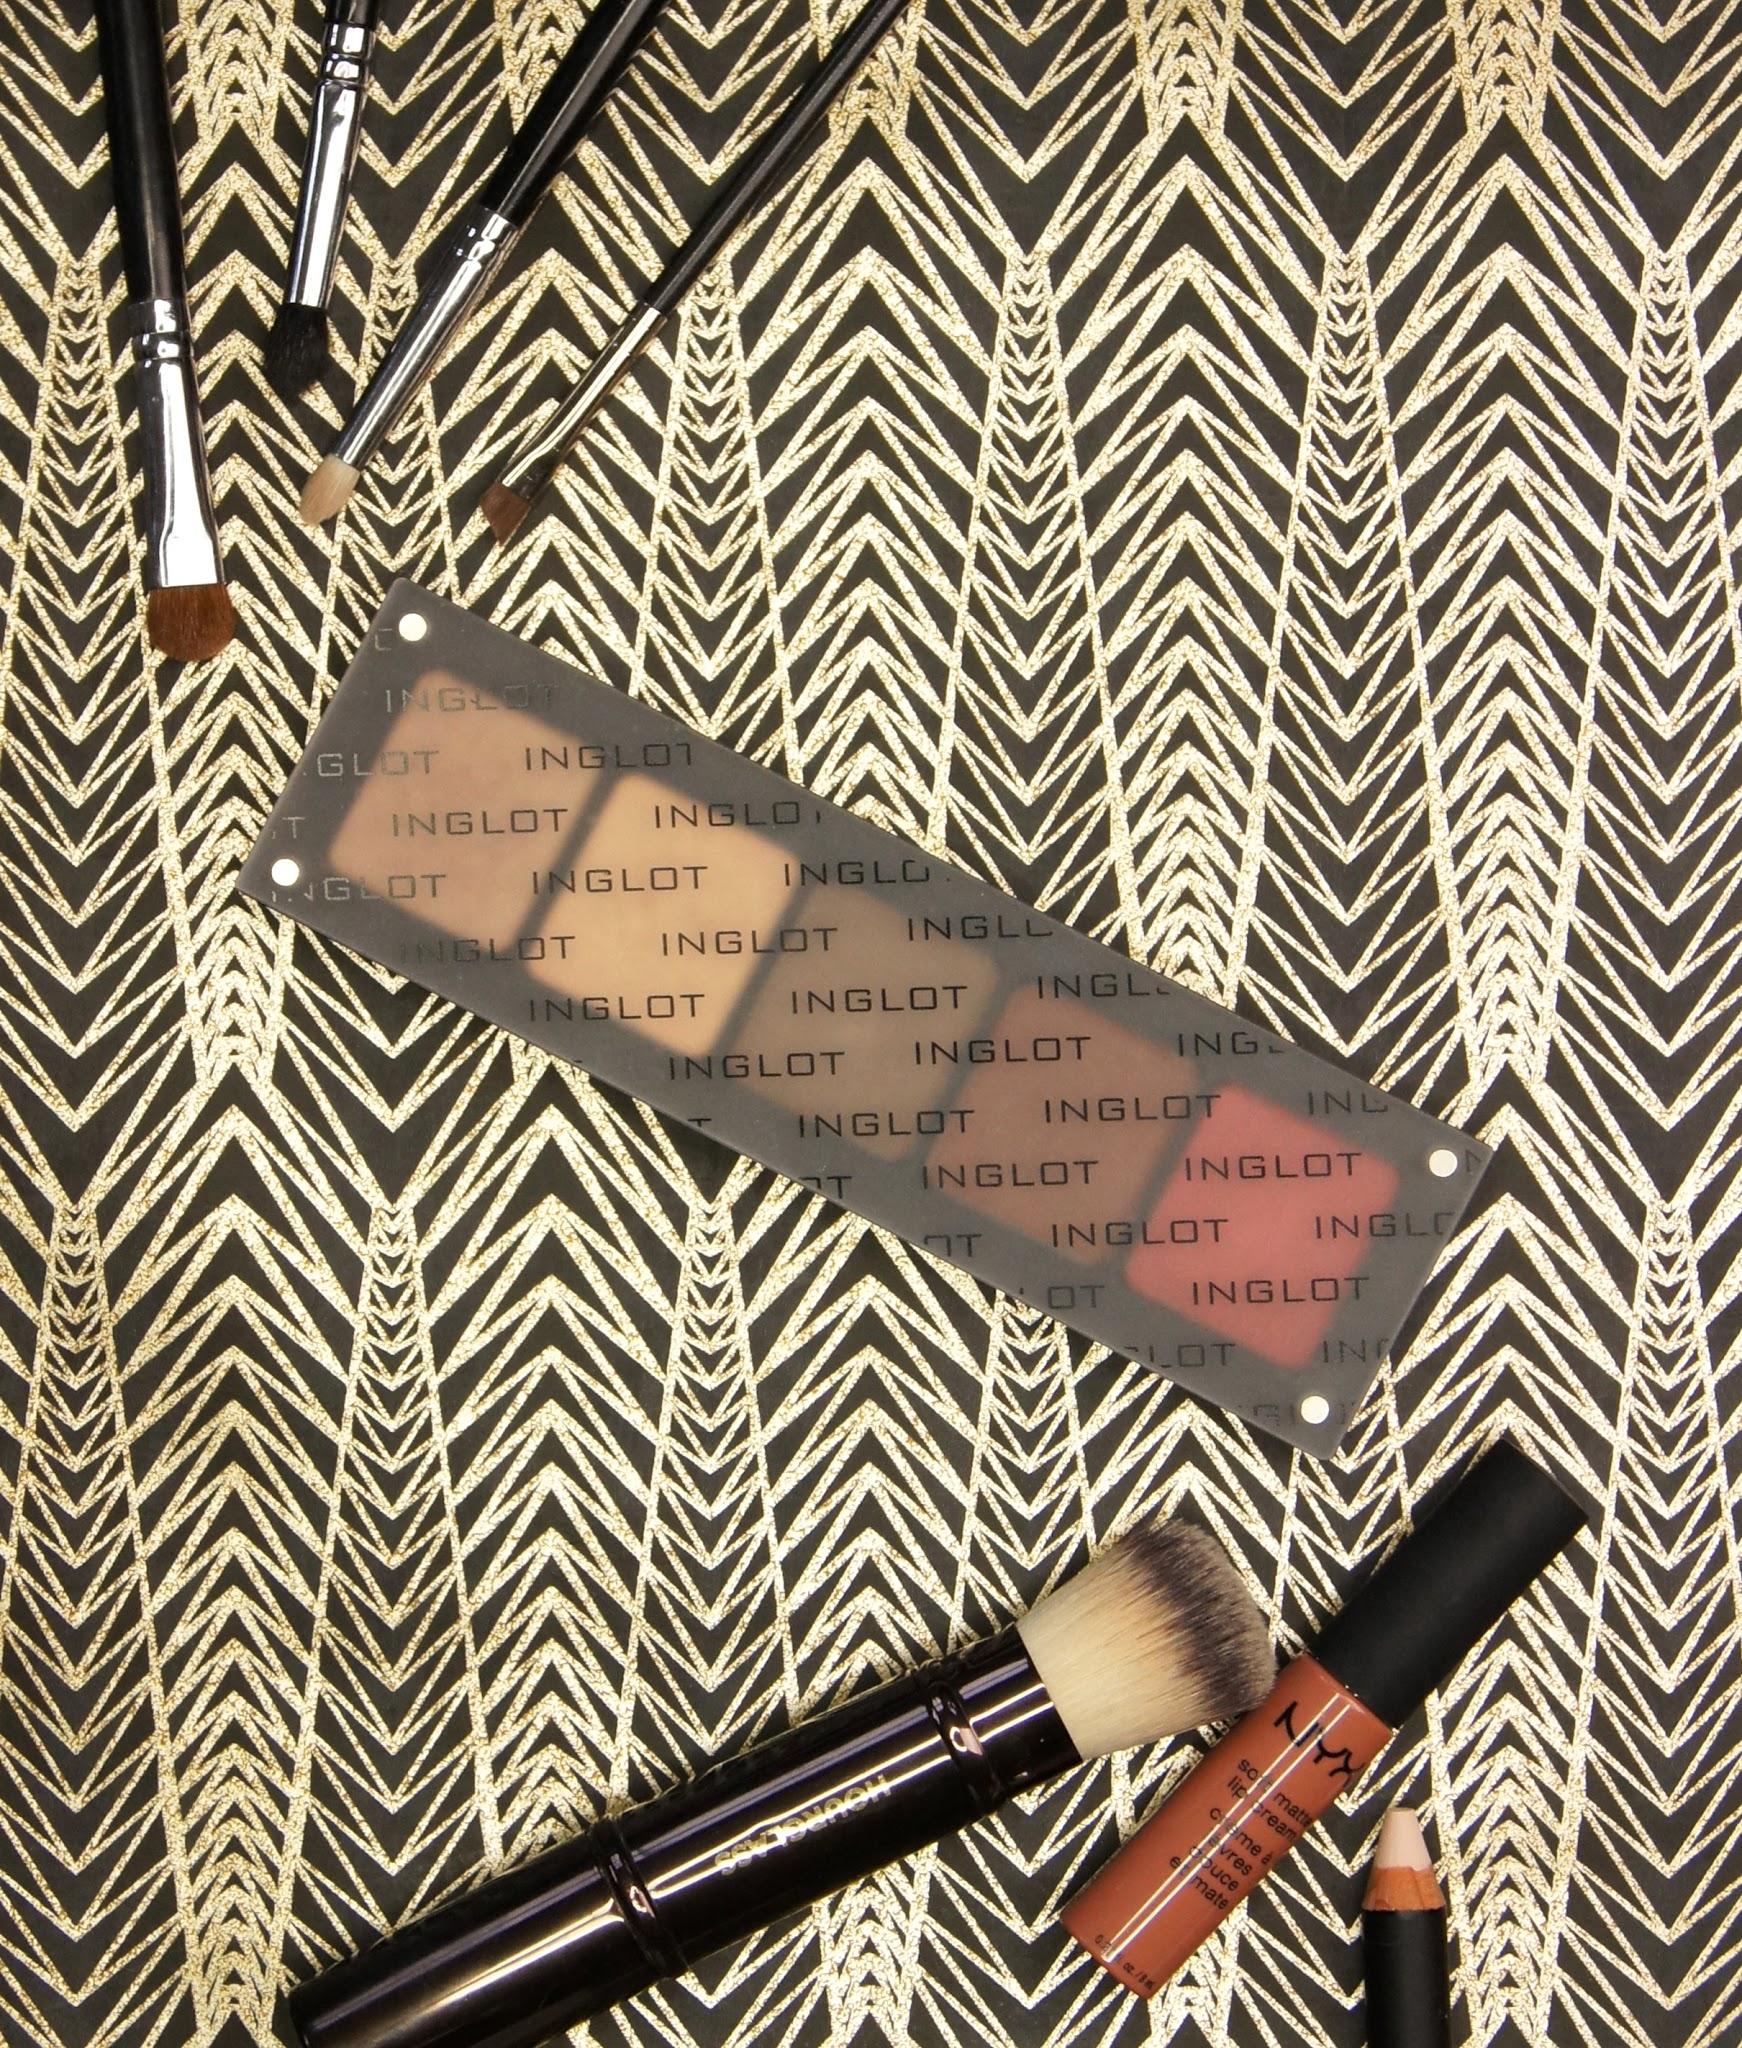 inglot freedom system custom eyeshadow palette review swatches mac comparison